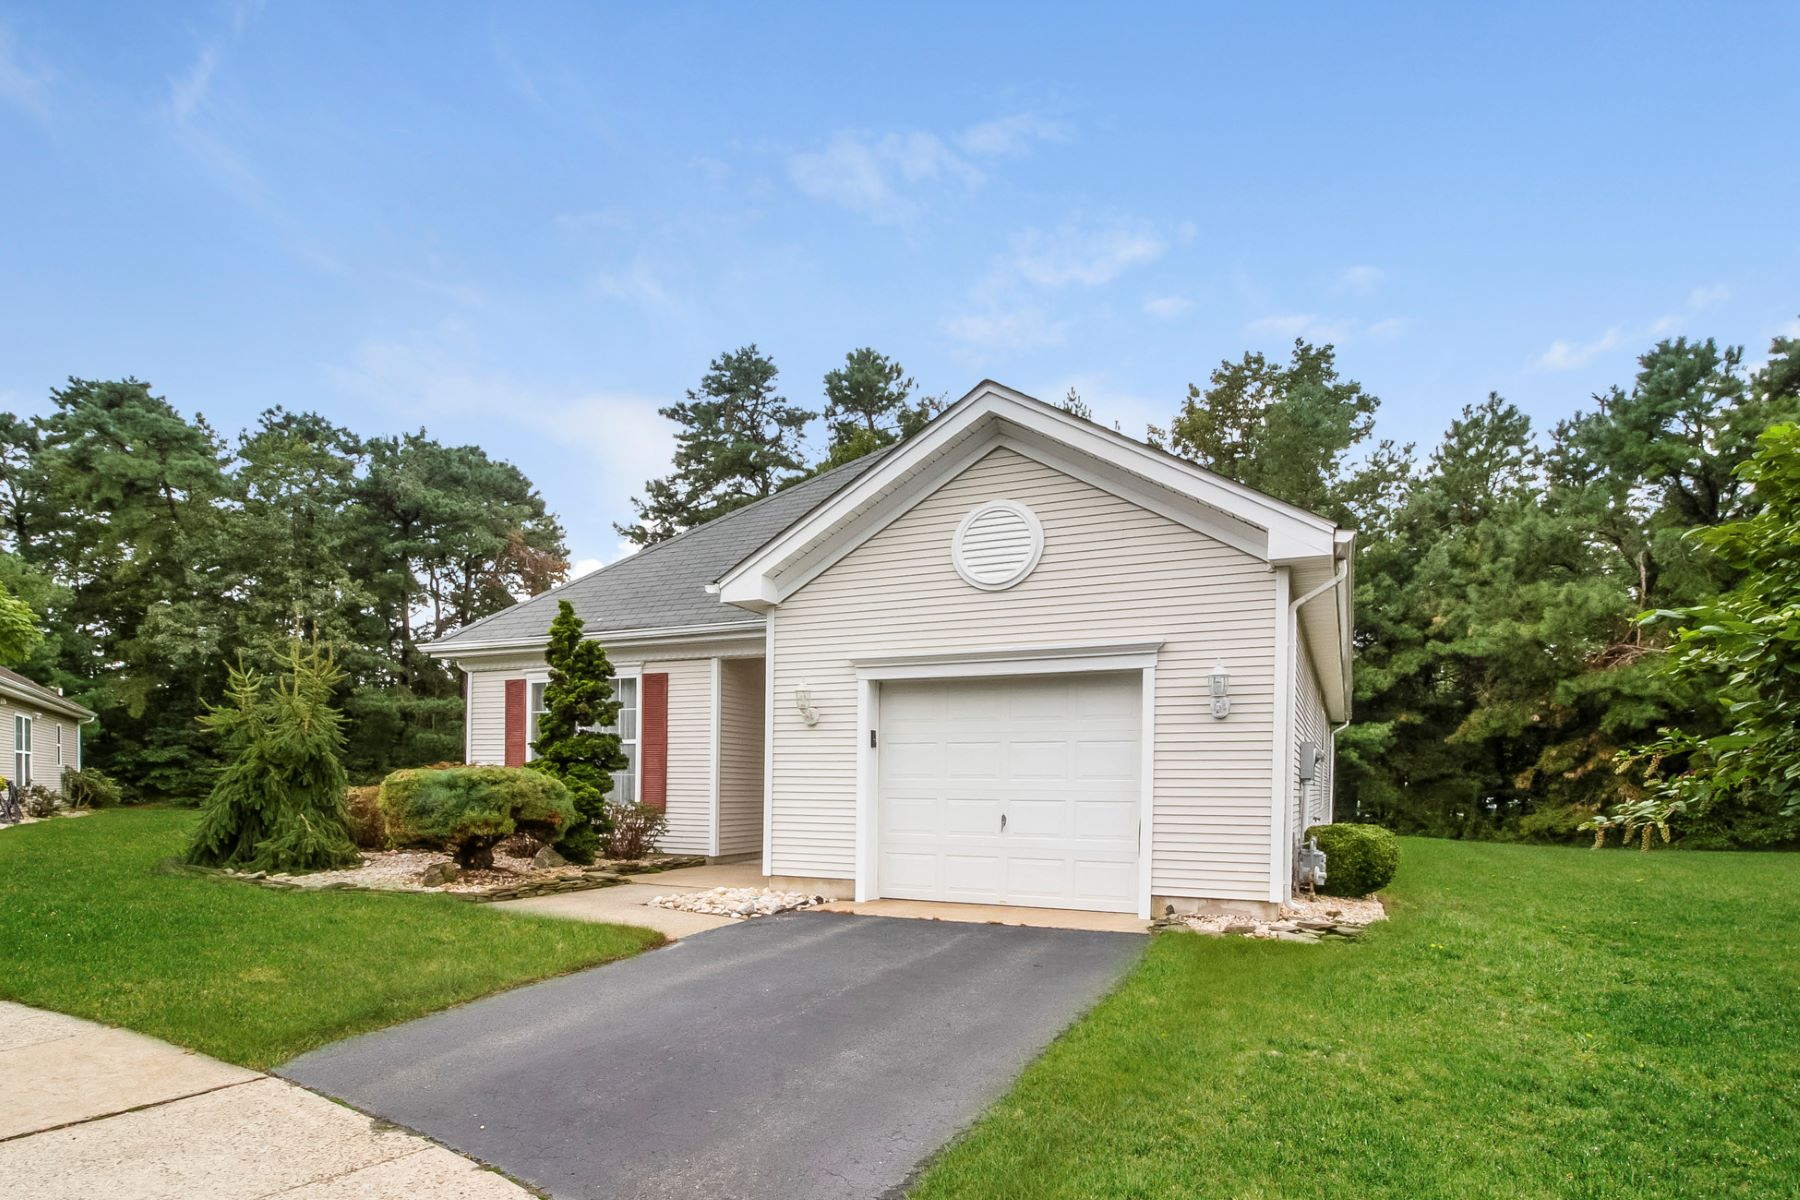 Single Family Home for Sale at Expanded Bayberry Model 9 Fallcrest Court, Lakewood, New Jersey 08701 United StatesMunicipality: Lakewood